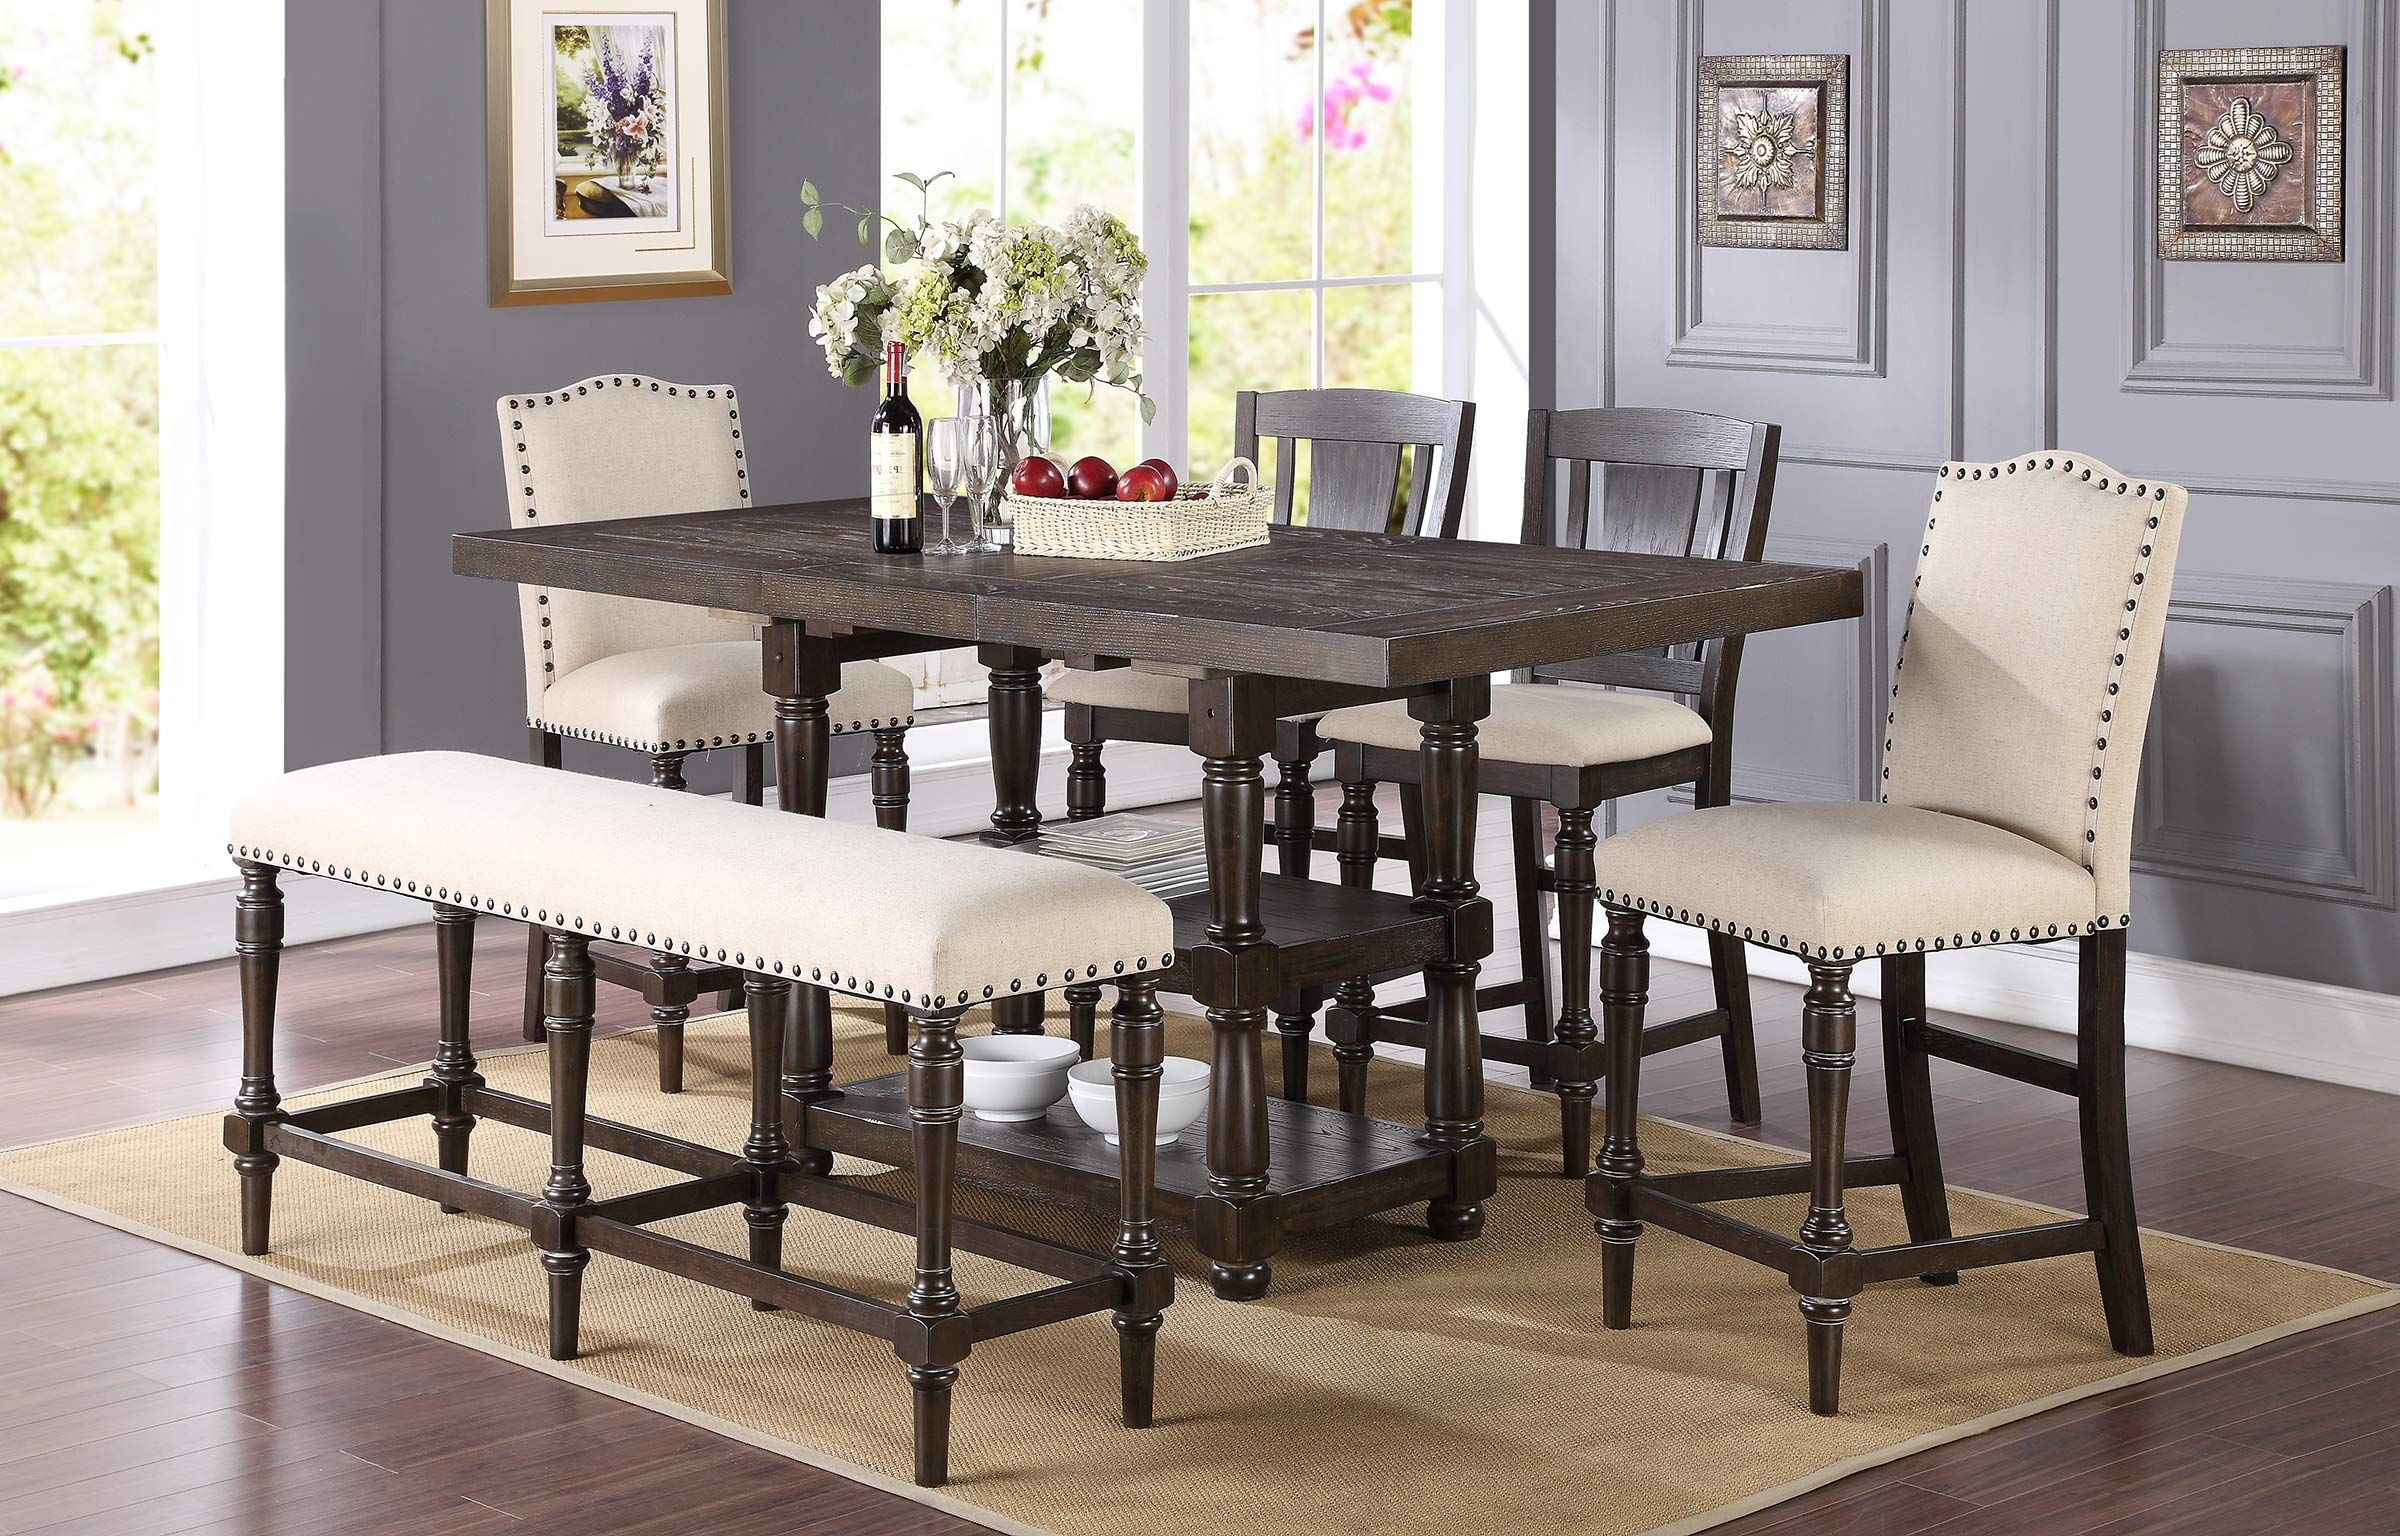 Brand new Xcalibur - Counter Height Shelf Table - Dining Tables from  Winners Only. Crowley Furniture is Kansas City's family owned furniture  store for over ...